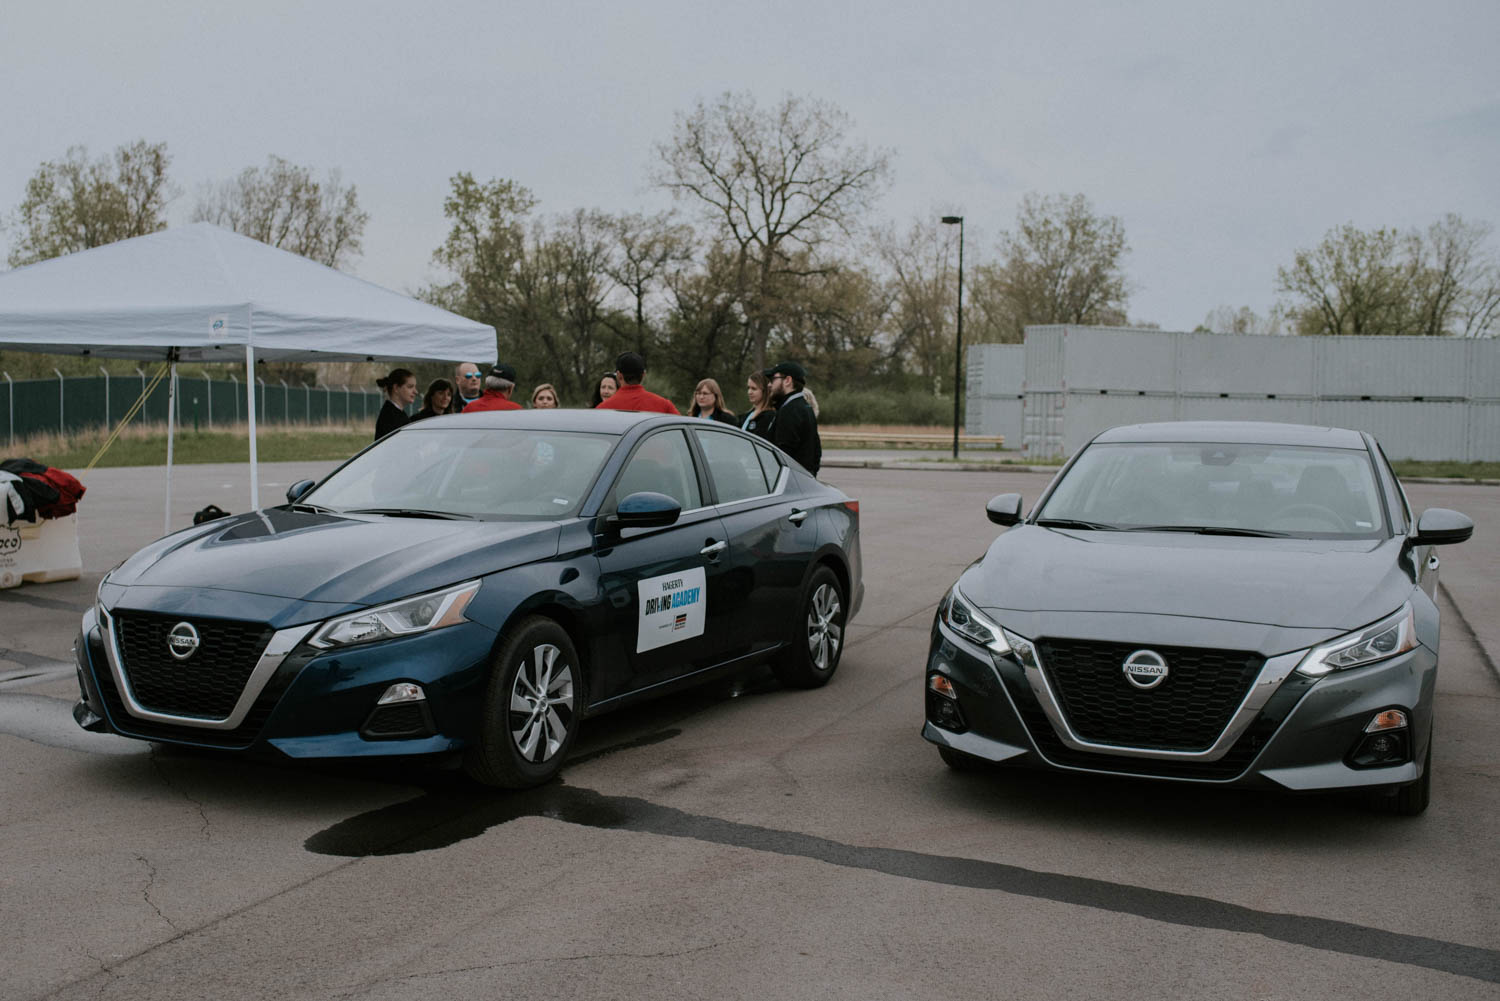 A pair of Nissan Altimas await students at the skid pad